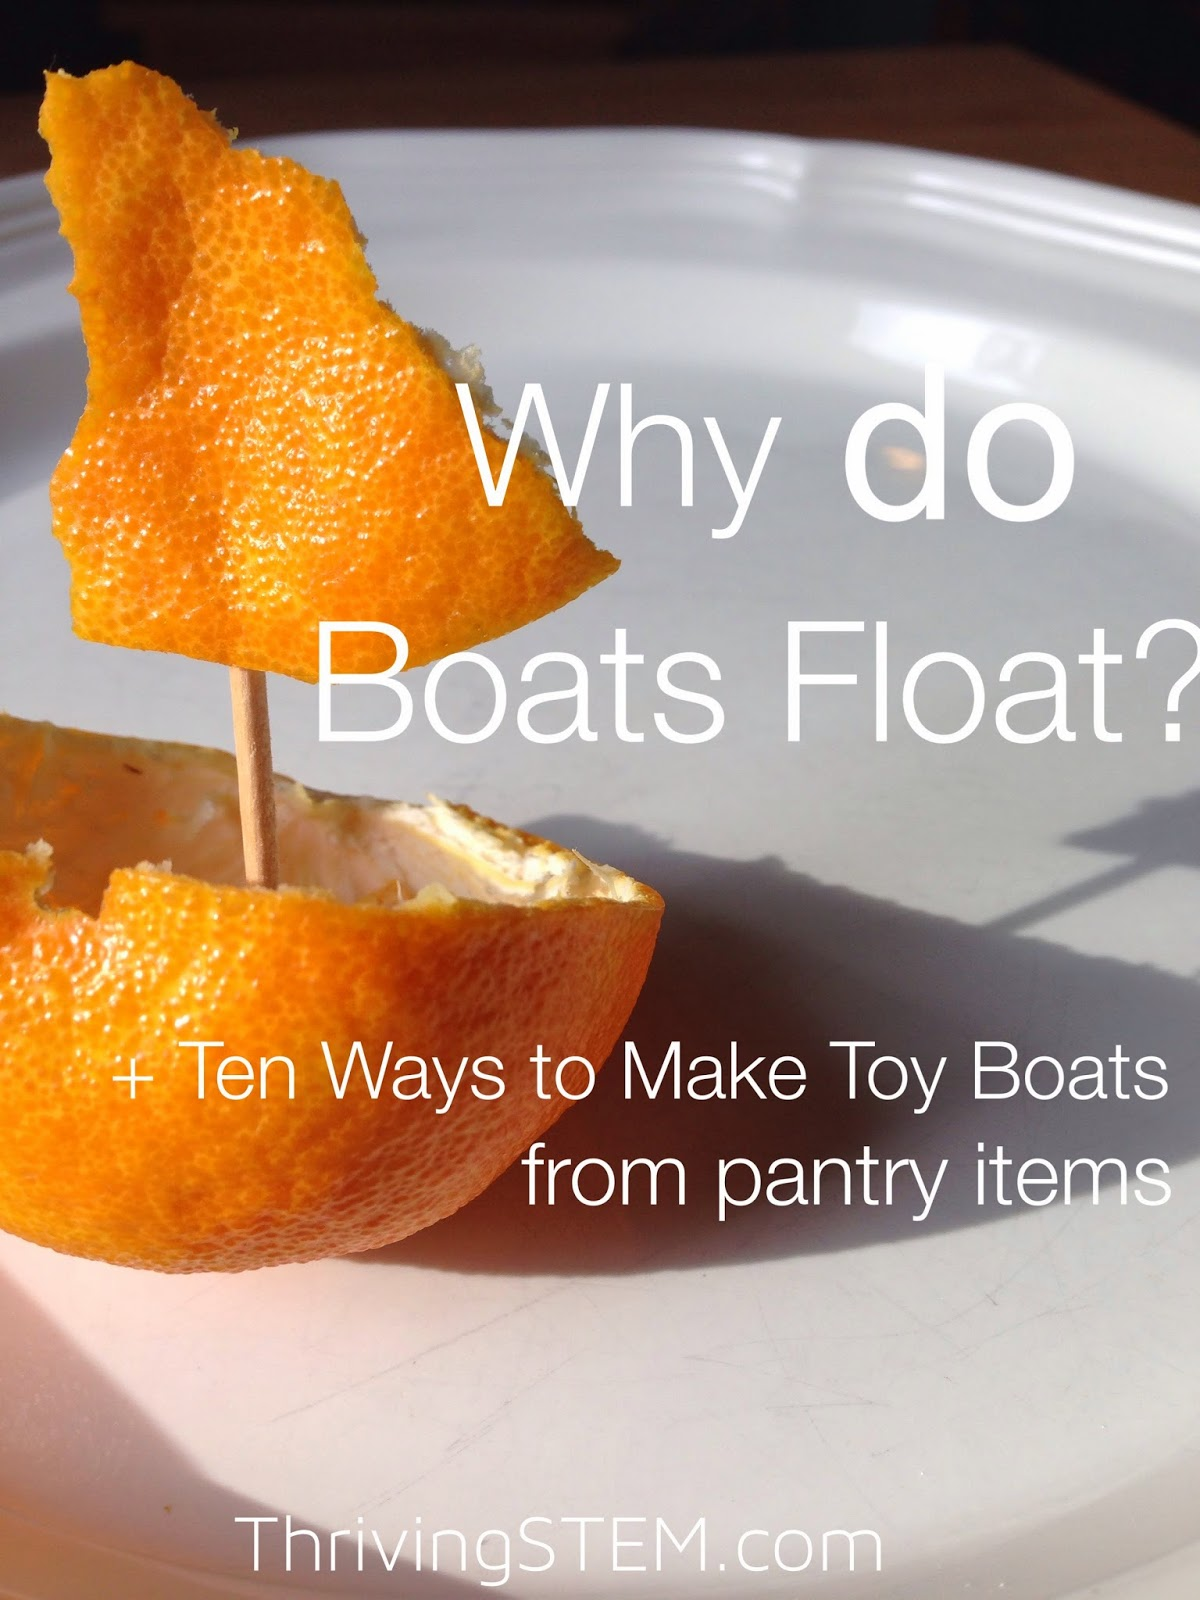 You can explain how boats float, and find 10 ways to make your own toy boat from pantry items.